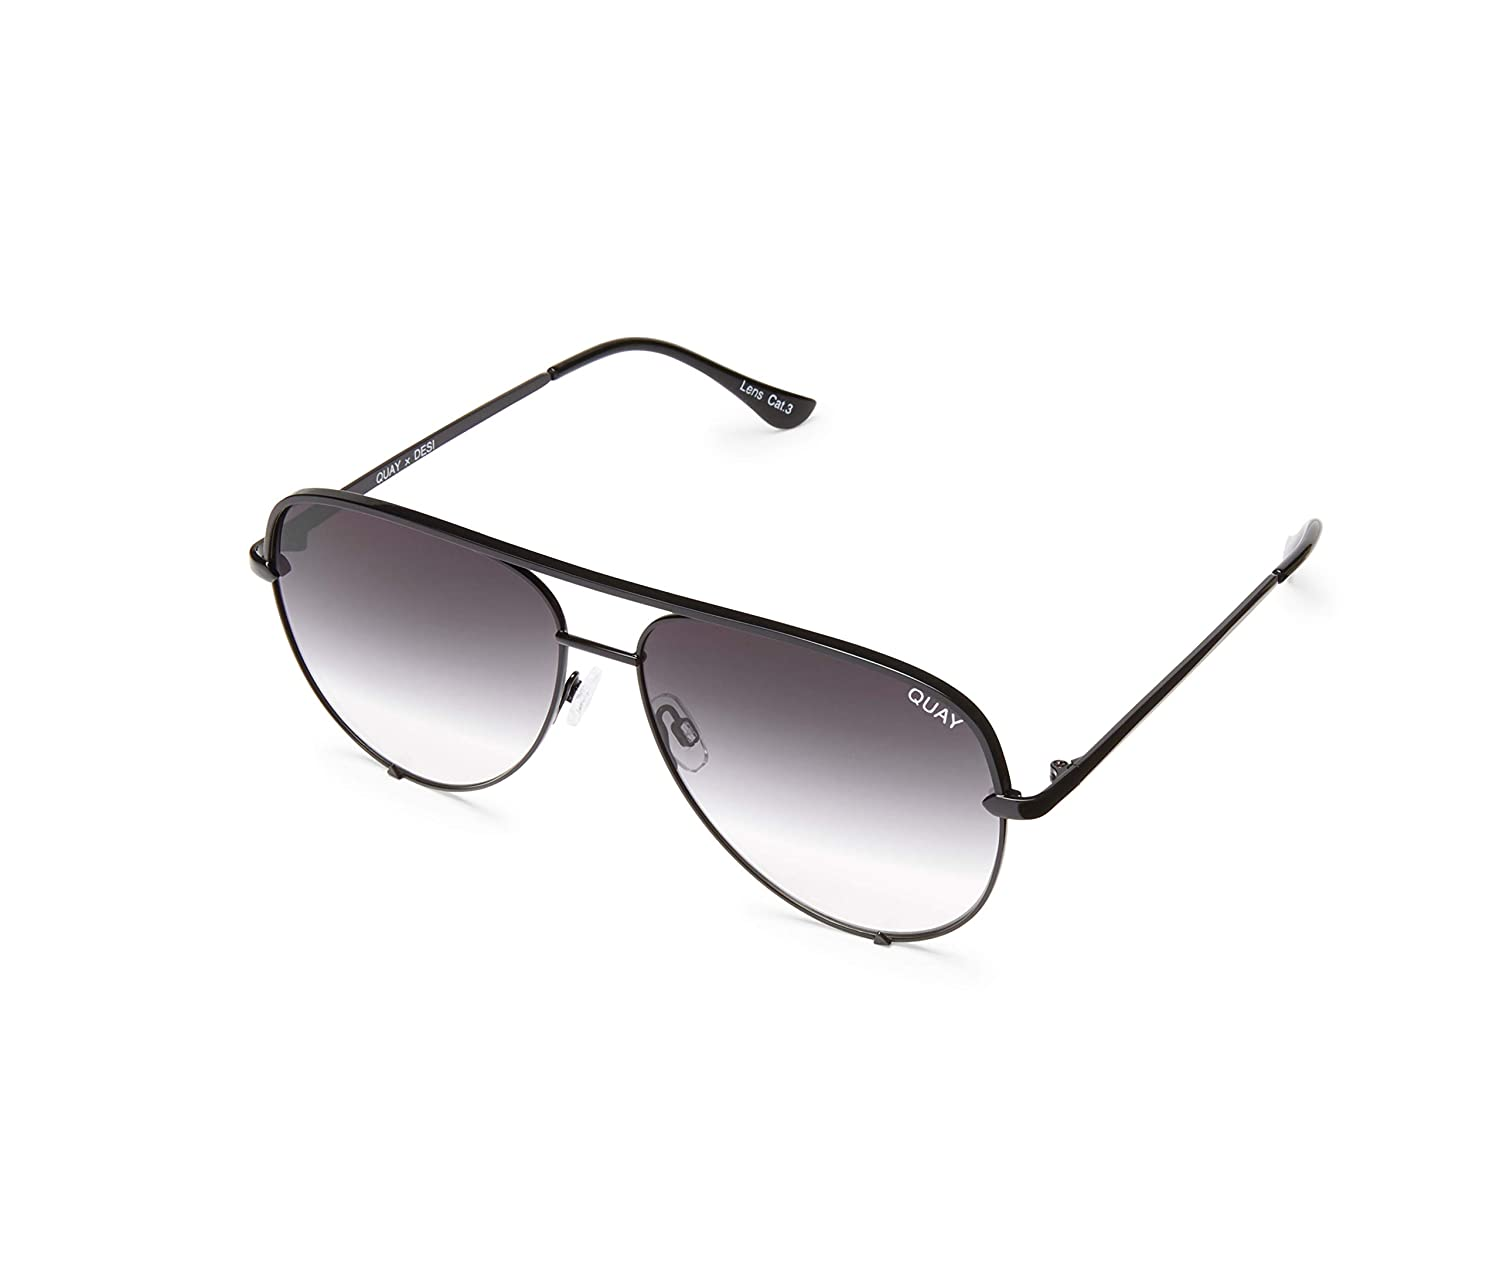 2627833edf20 Amazon.com  Quay Australia HIGH KEY Men s and Women s Sunglasses Classic  Oversized Aviator - Black Fade  Quay  Clothing